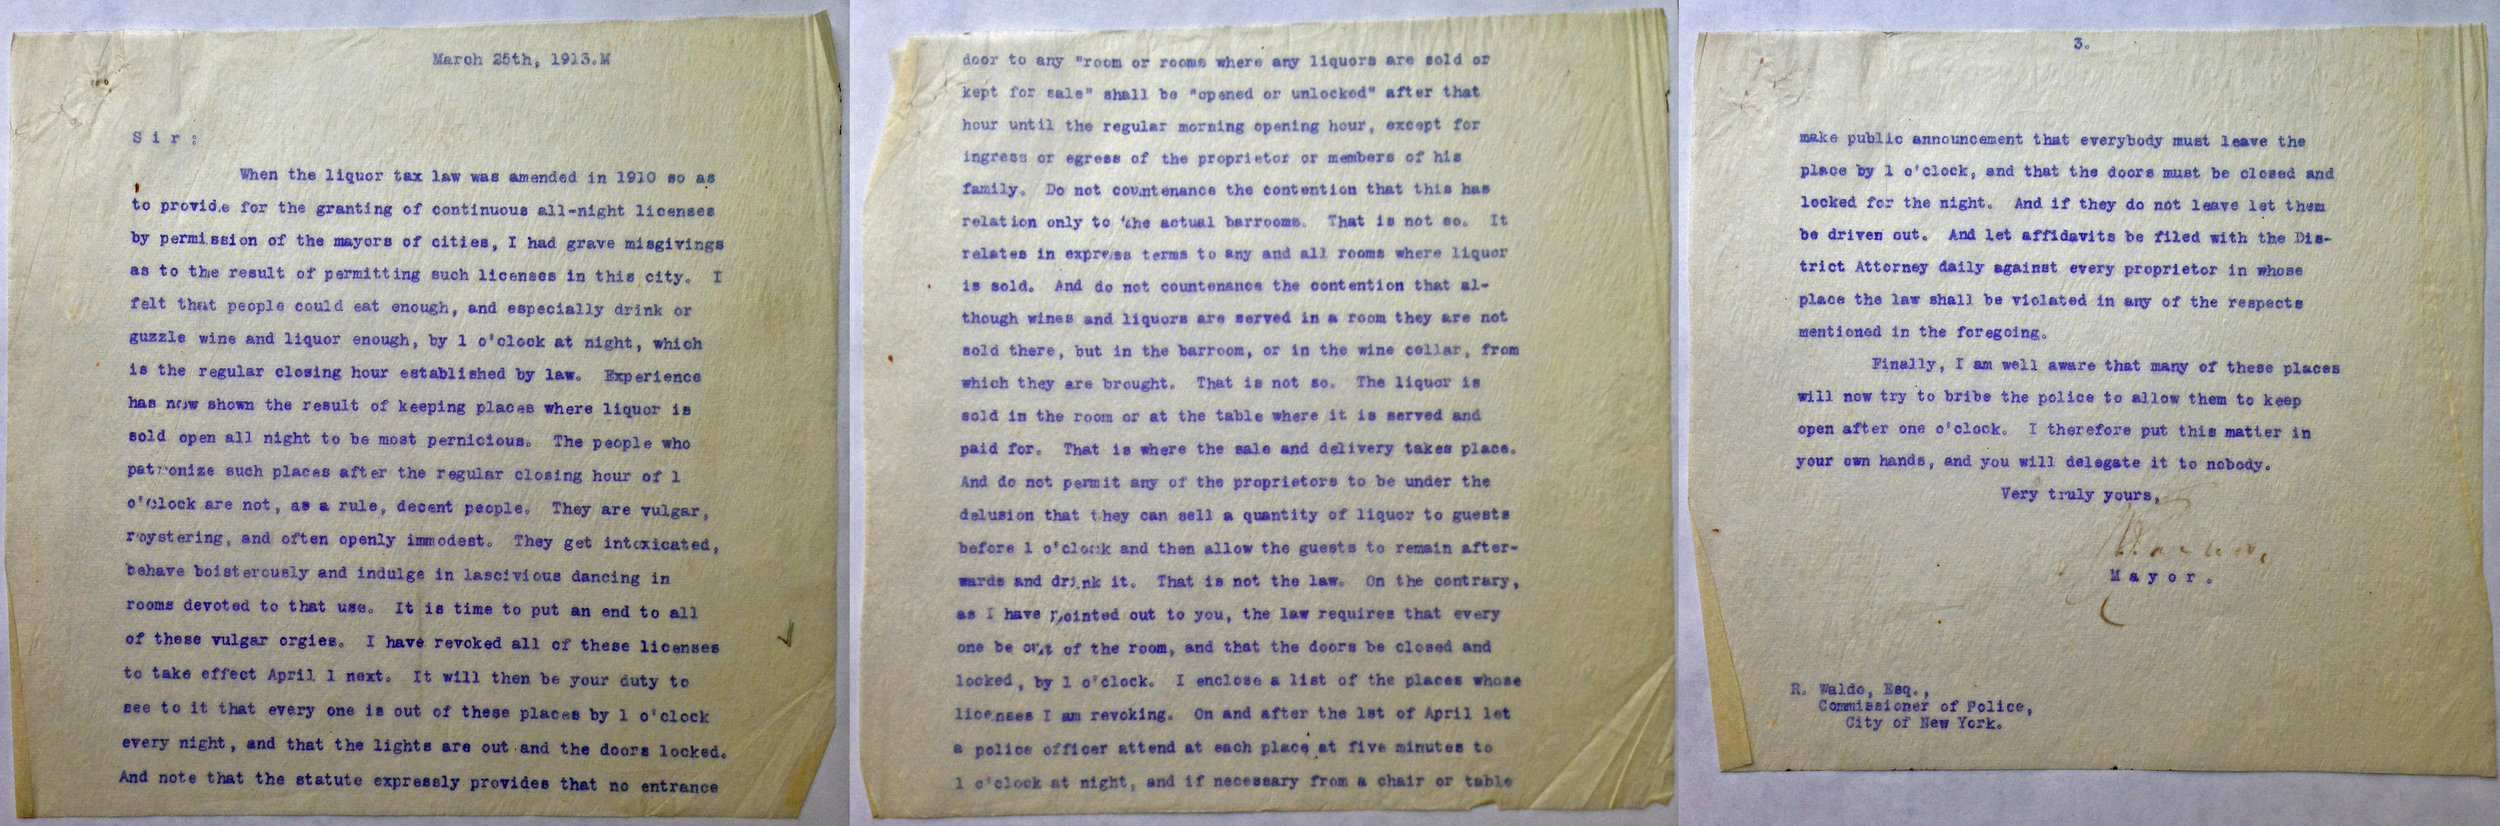 Carbon copy  of letter sent from Mayor Gayor to Police Commissioner Waldo, March 25, 1913. Mayor Gaynor collection, NYC Municipal Archives.